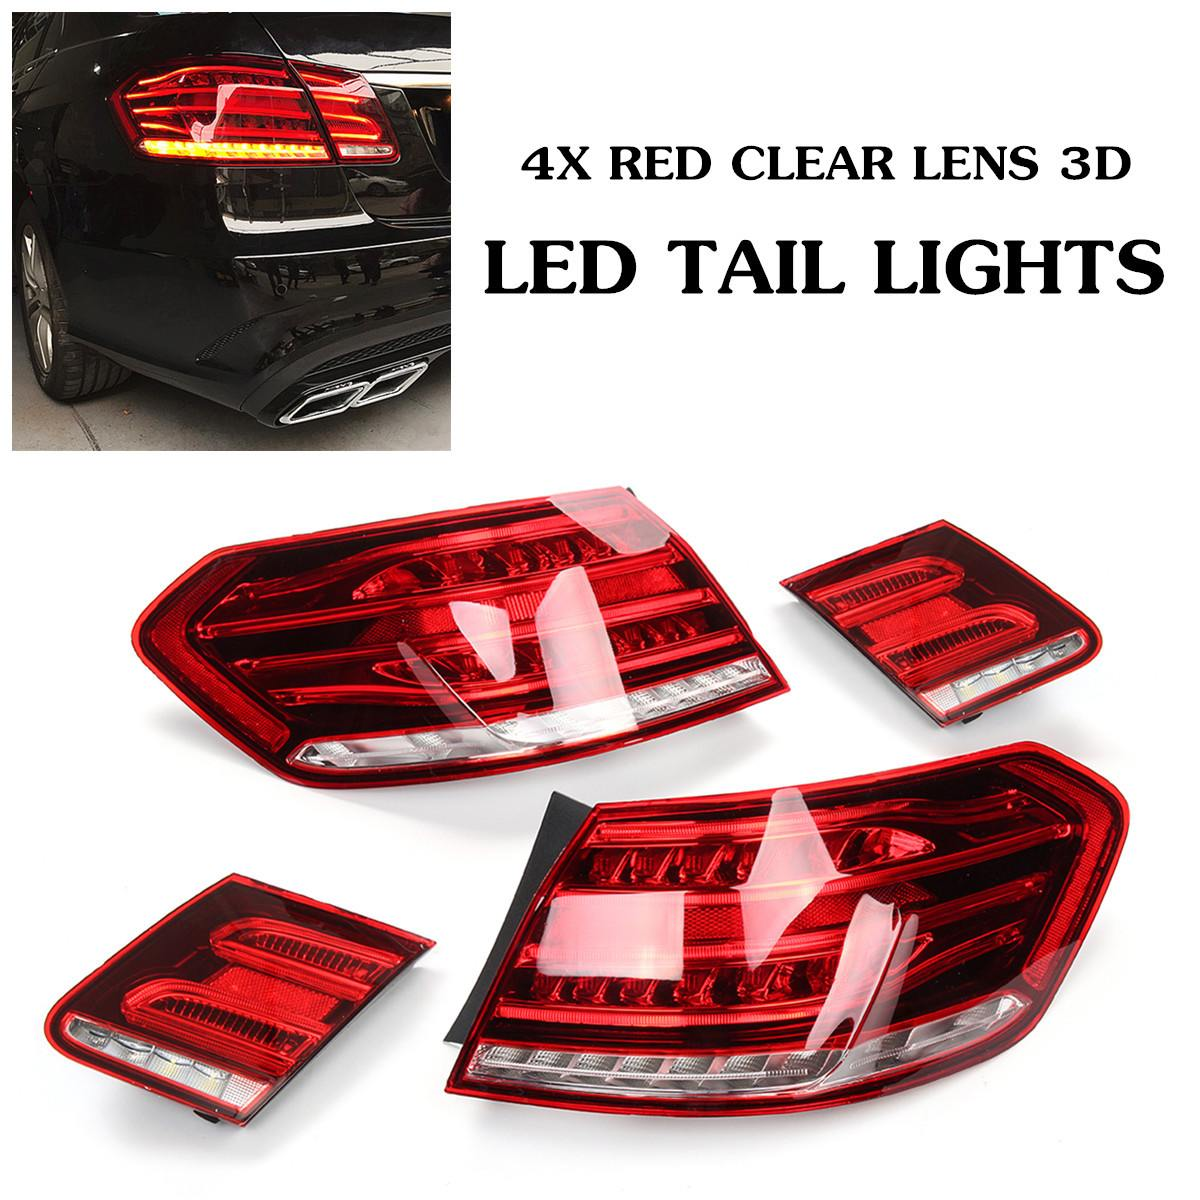 LED Tail Lights For Mercedes-Benz E Class W212 E350 E300 E250 E63 Sedan Lamps ABS 49x19cm Direct replacement Car Light AssemblyLED Tail Lights For Mercedes-Benz E Class W212 E350 E300 E250 E63 Sedan Lamps ABS 49x19cm Direct replacement Car Light Assembly